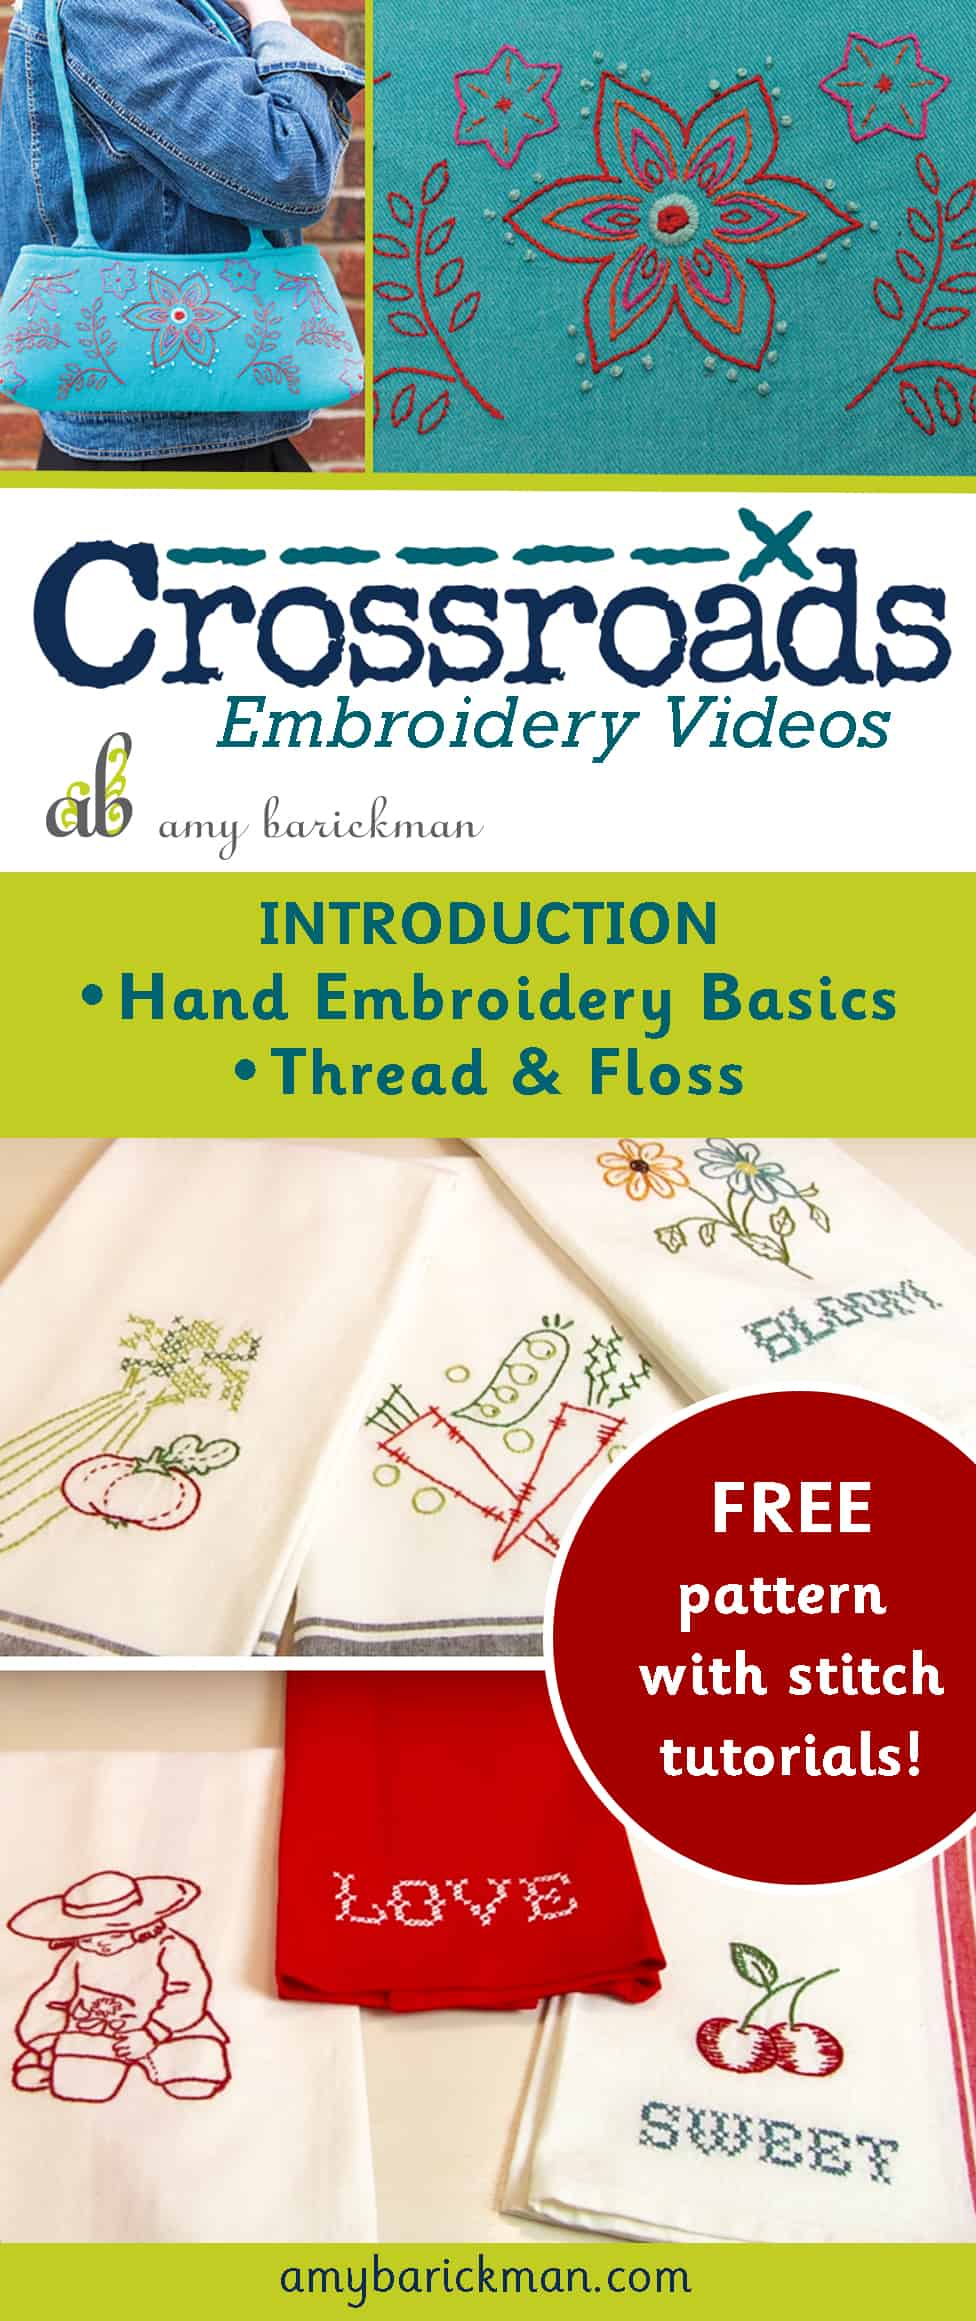 Learn to embroider with Amy Barickman! Everything you need to know to get started, and free patterns too!